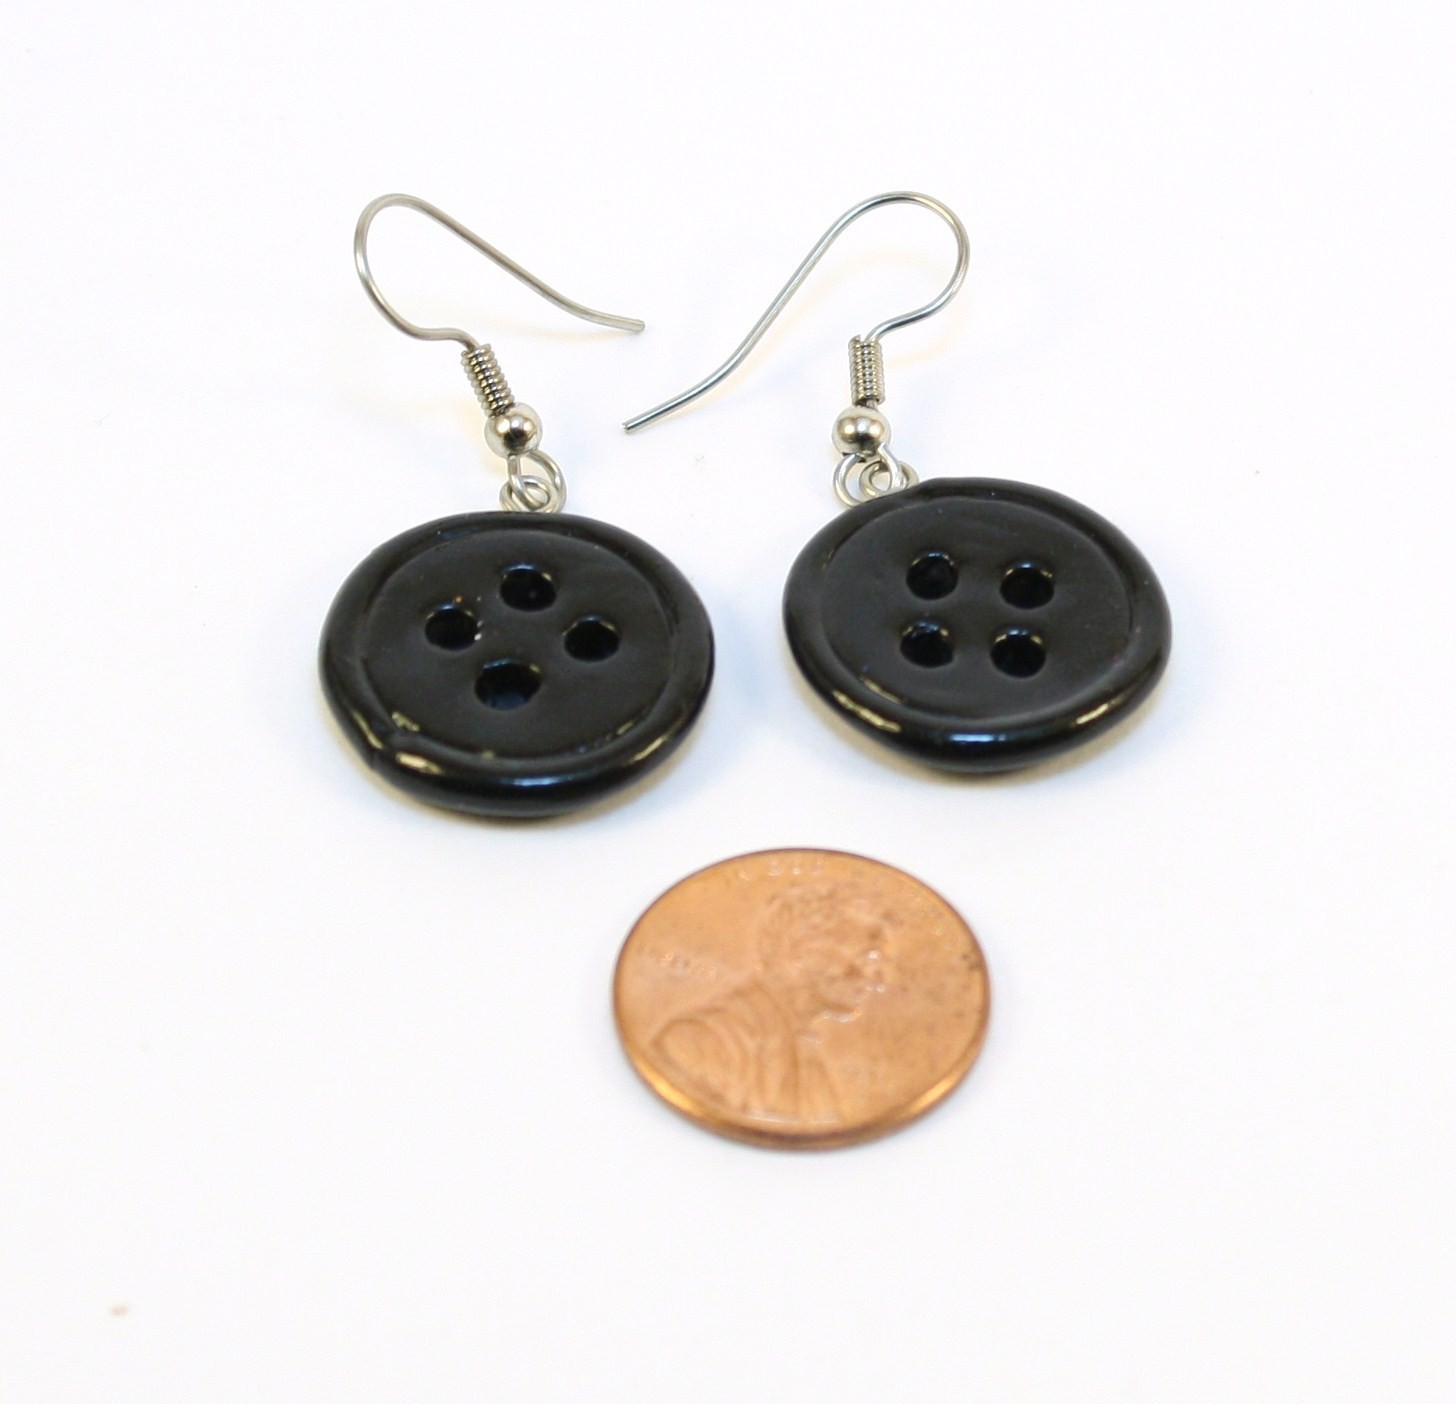 Coraline Black Button Earrings Mto On Storenvy